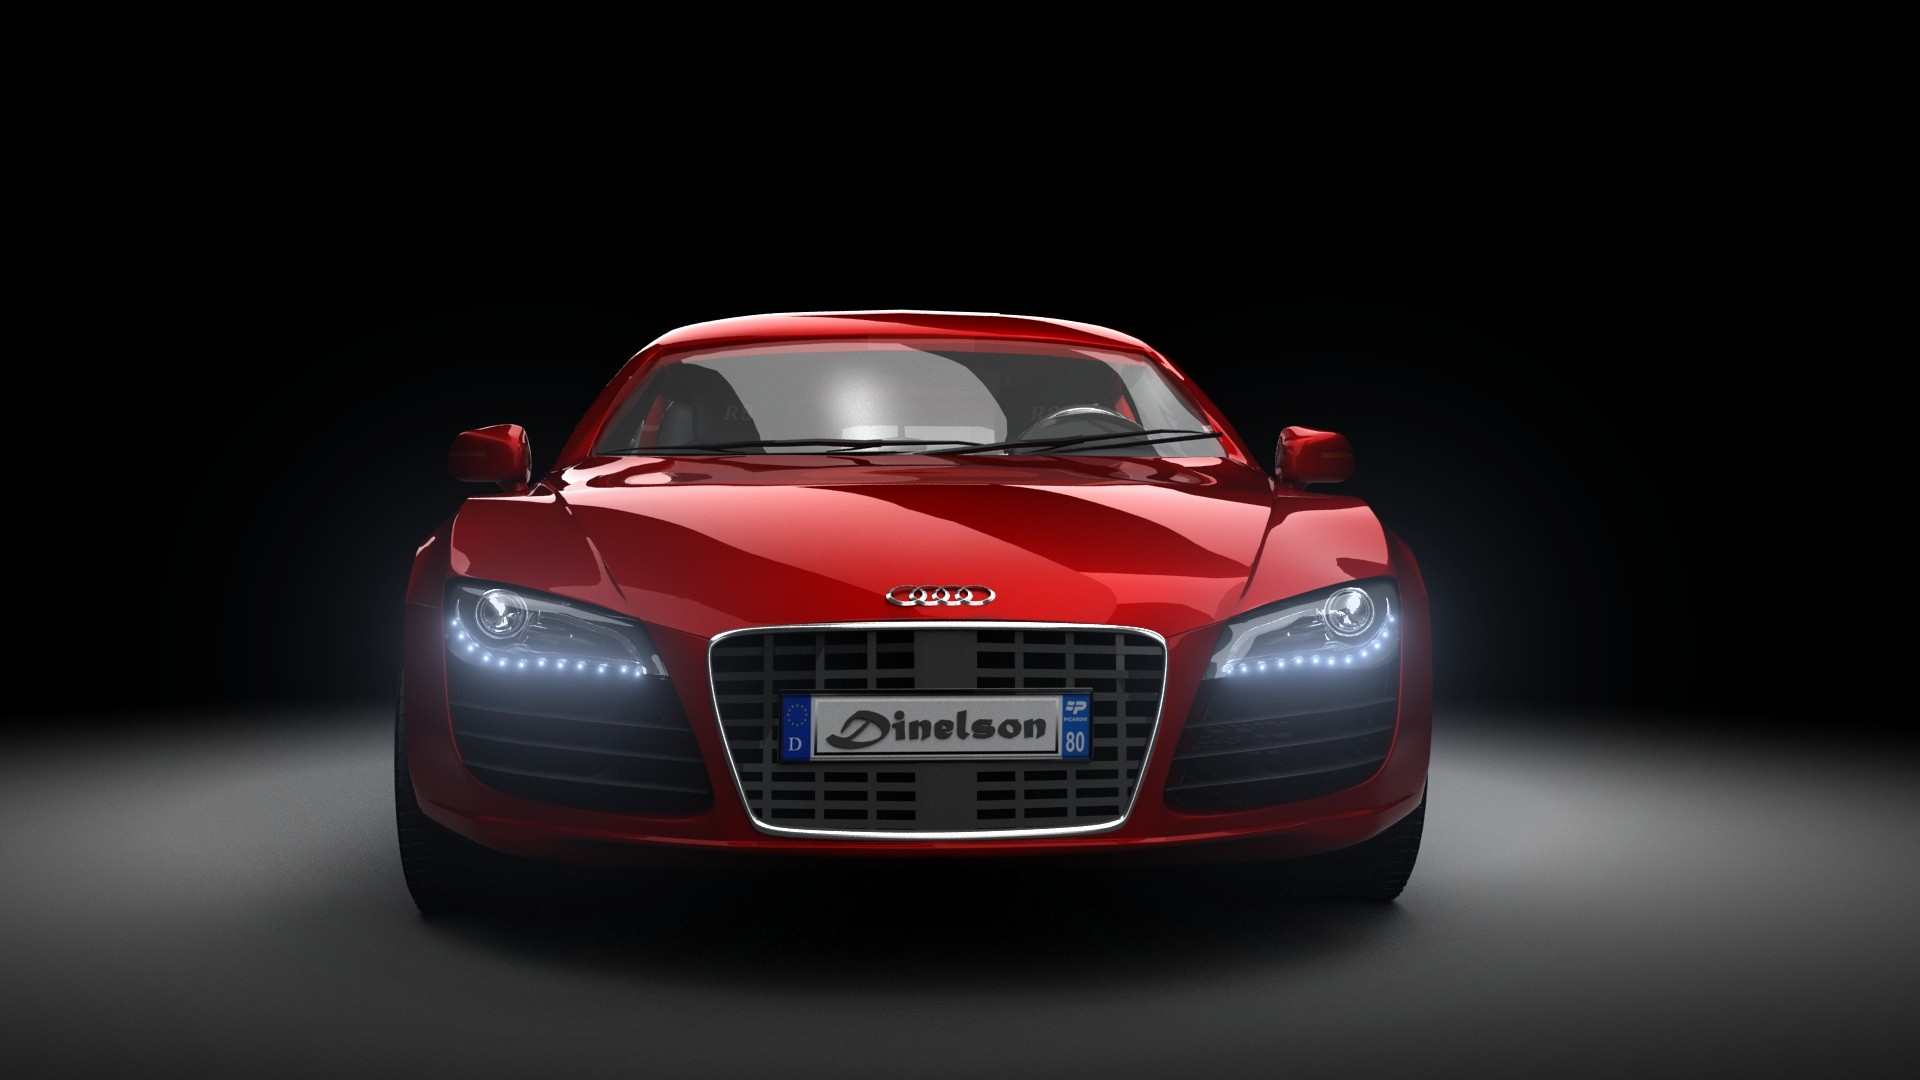 43 audi wallpapers/backgrounds in hd for free download